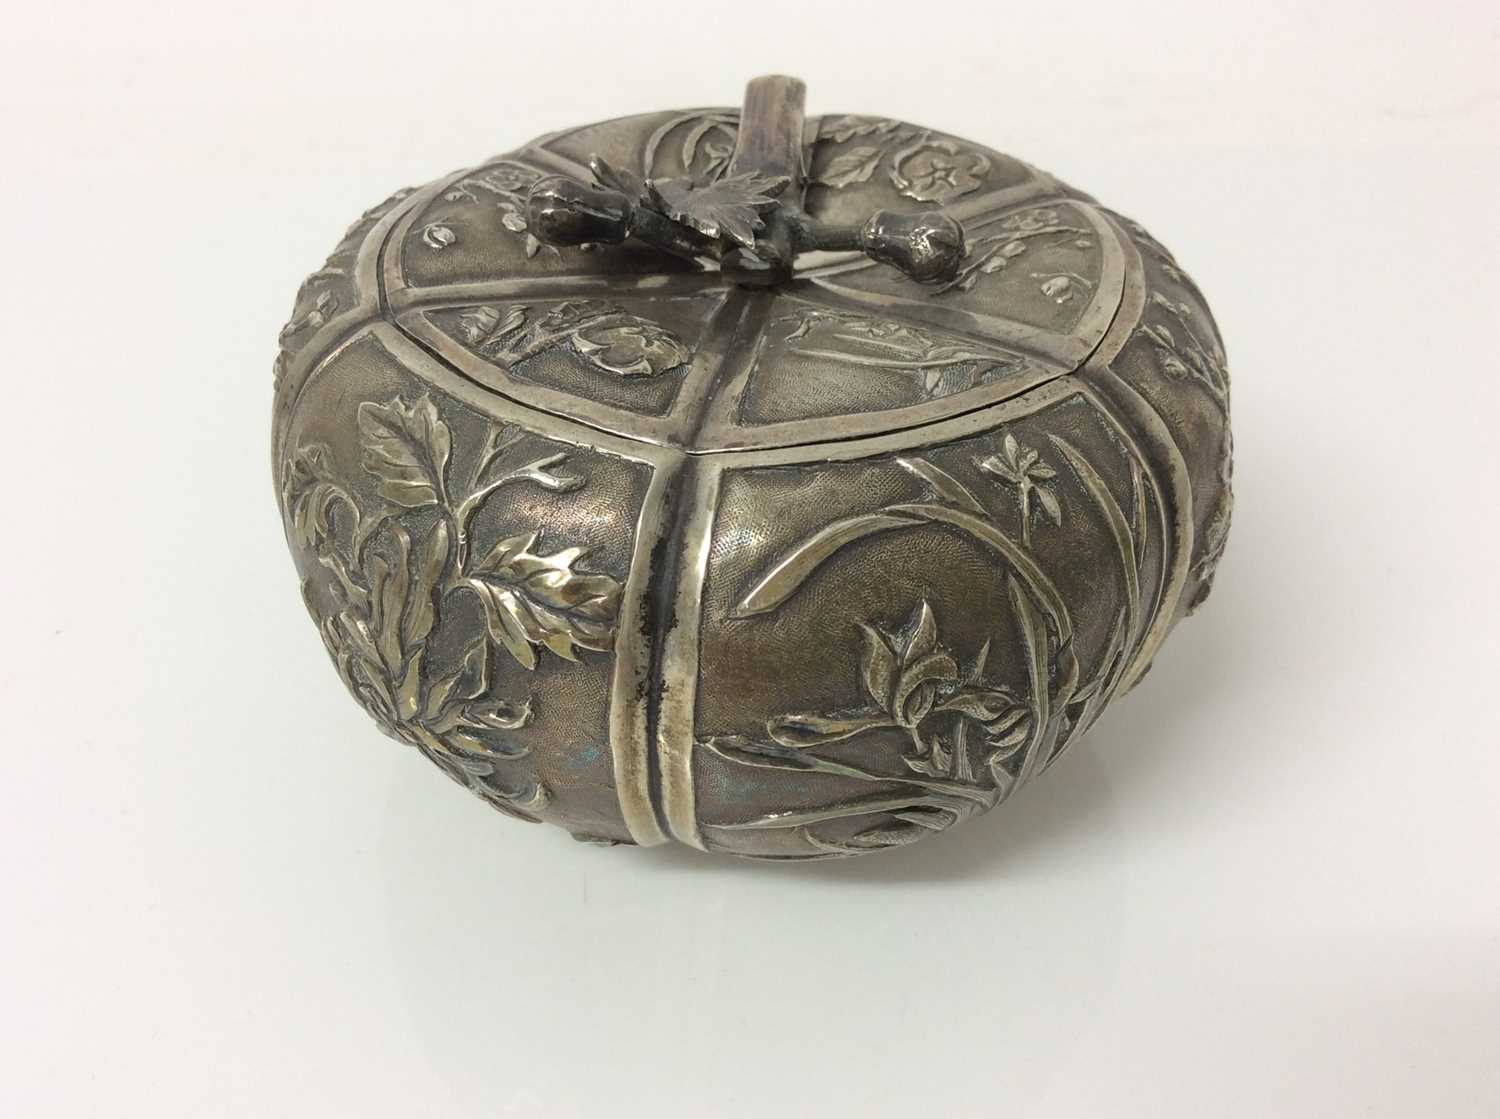 Late 19th/early 20th century Chinese silver lidded pot - Image 4 of 10